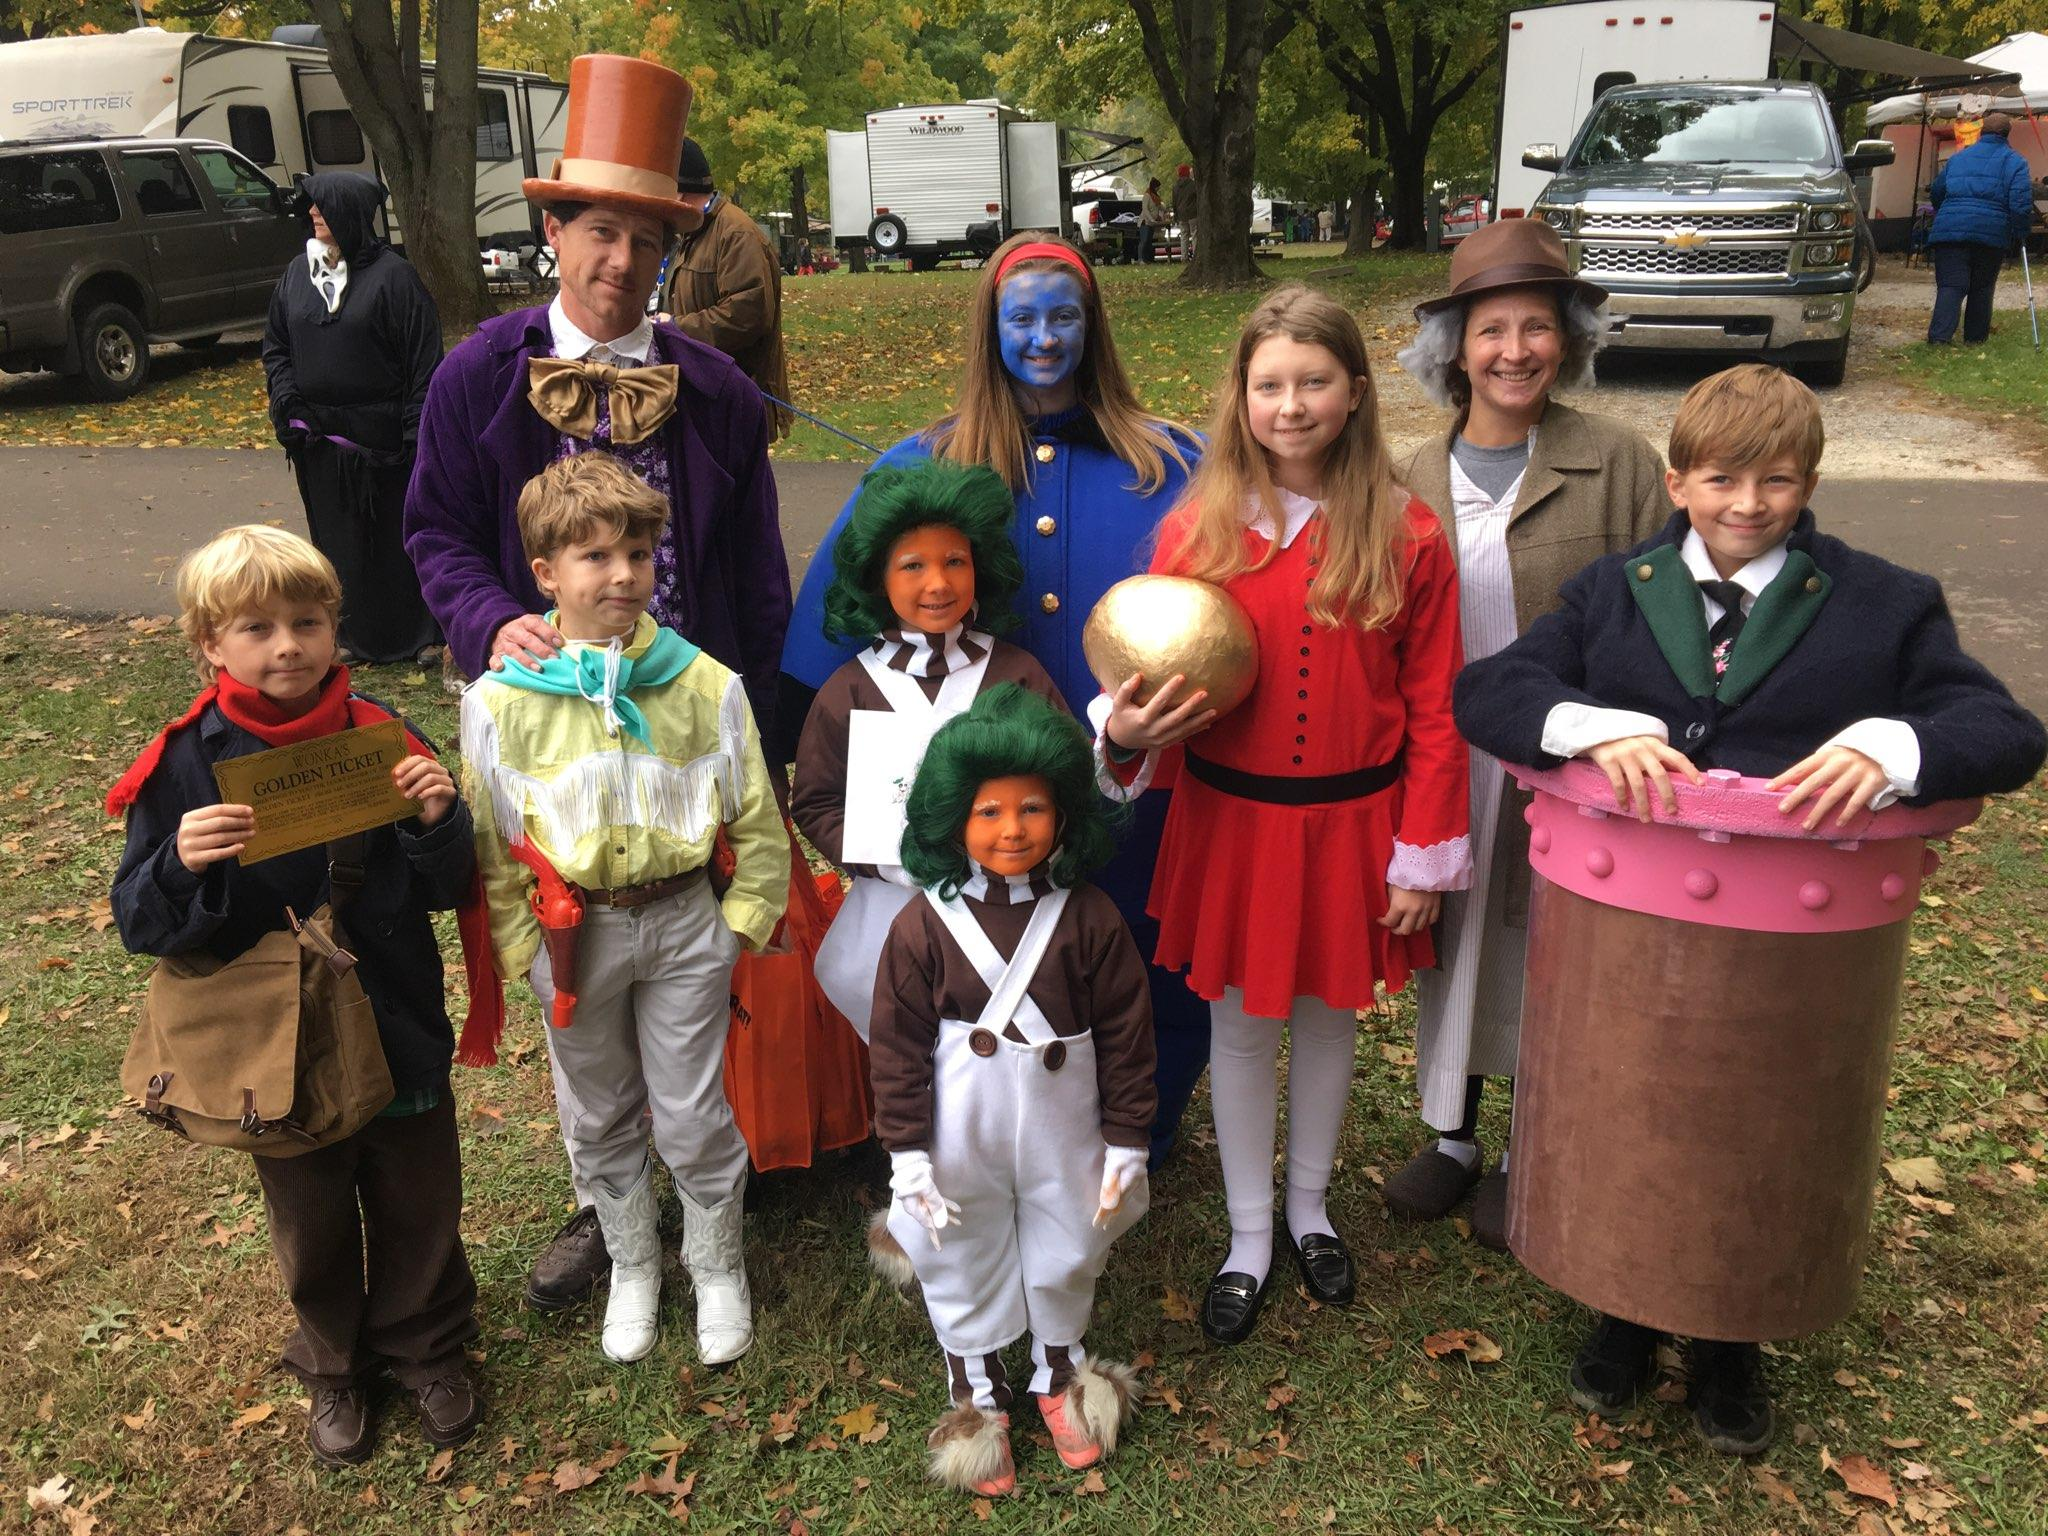 Willy Wonka And The Chocolate Factory Halloween Costume Contest